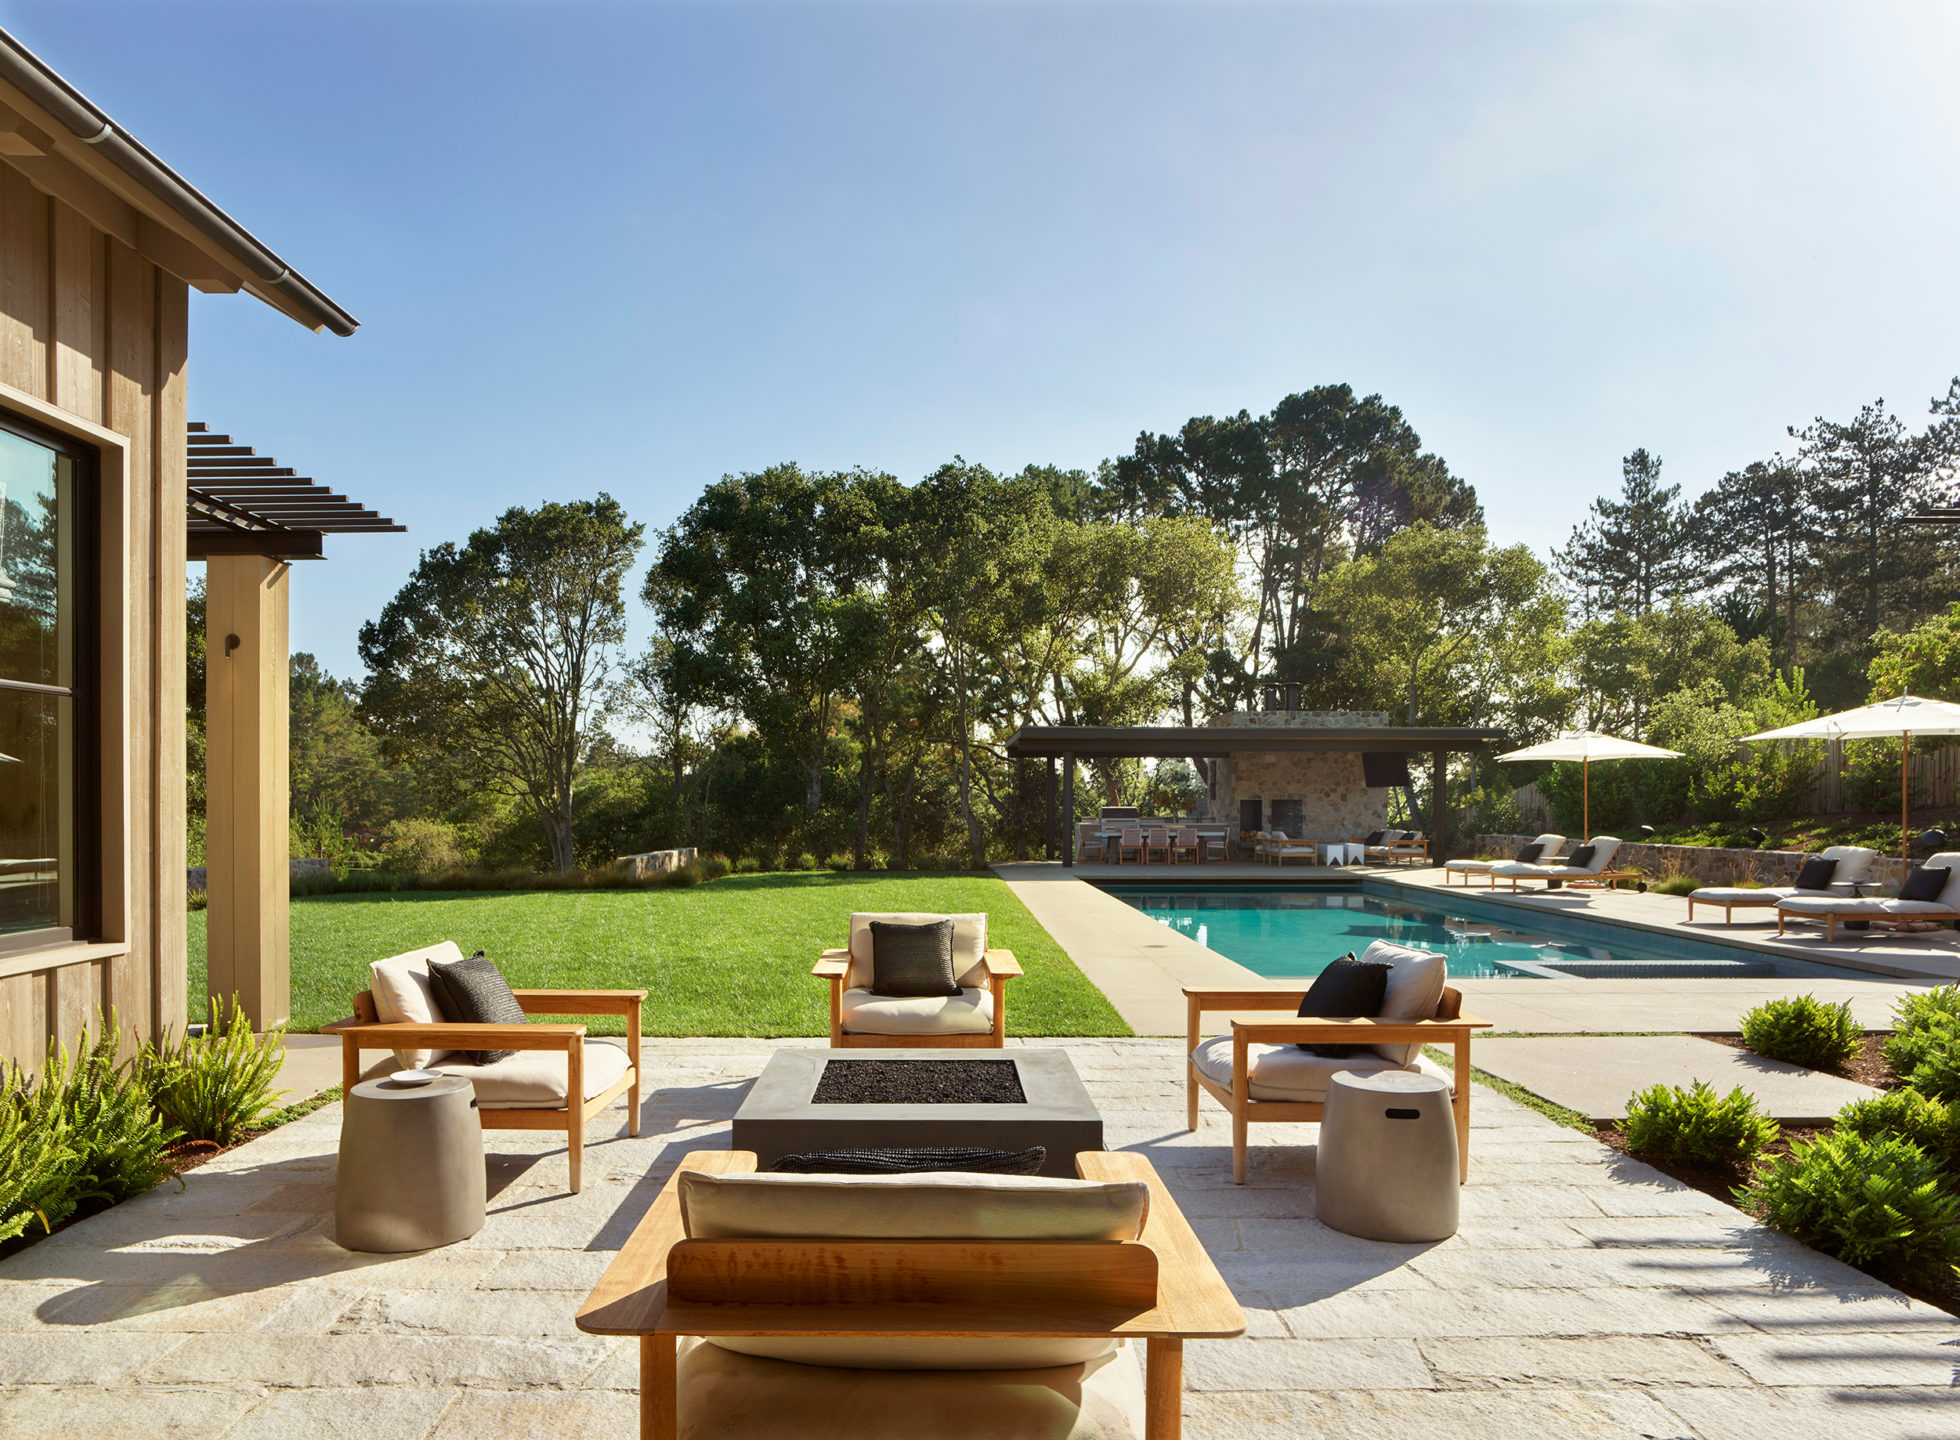 Jennifer_robins_interiors_projects_pacific_heights_portola_valley_exterior_pool_10Portola_39_HR